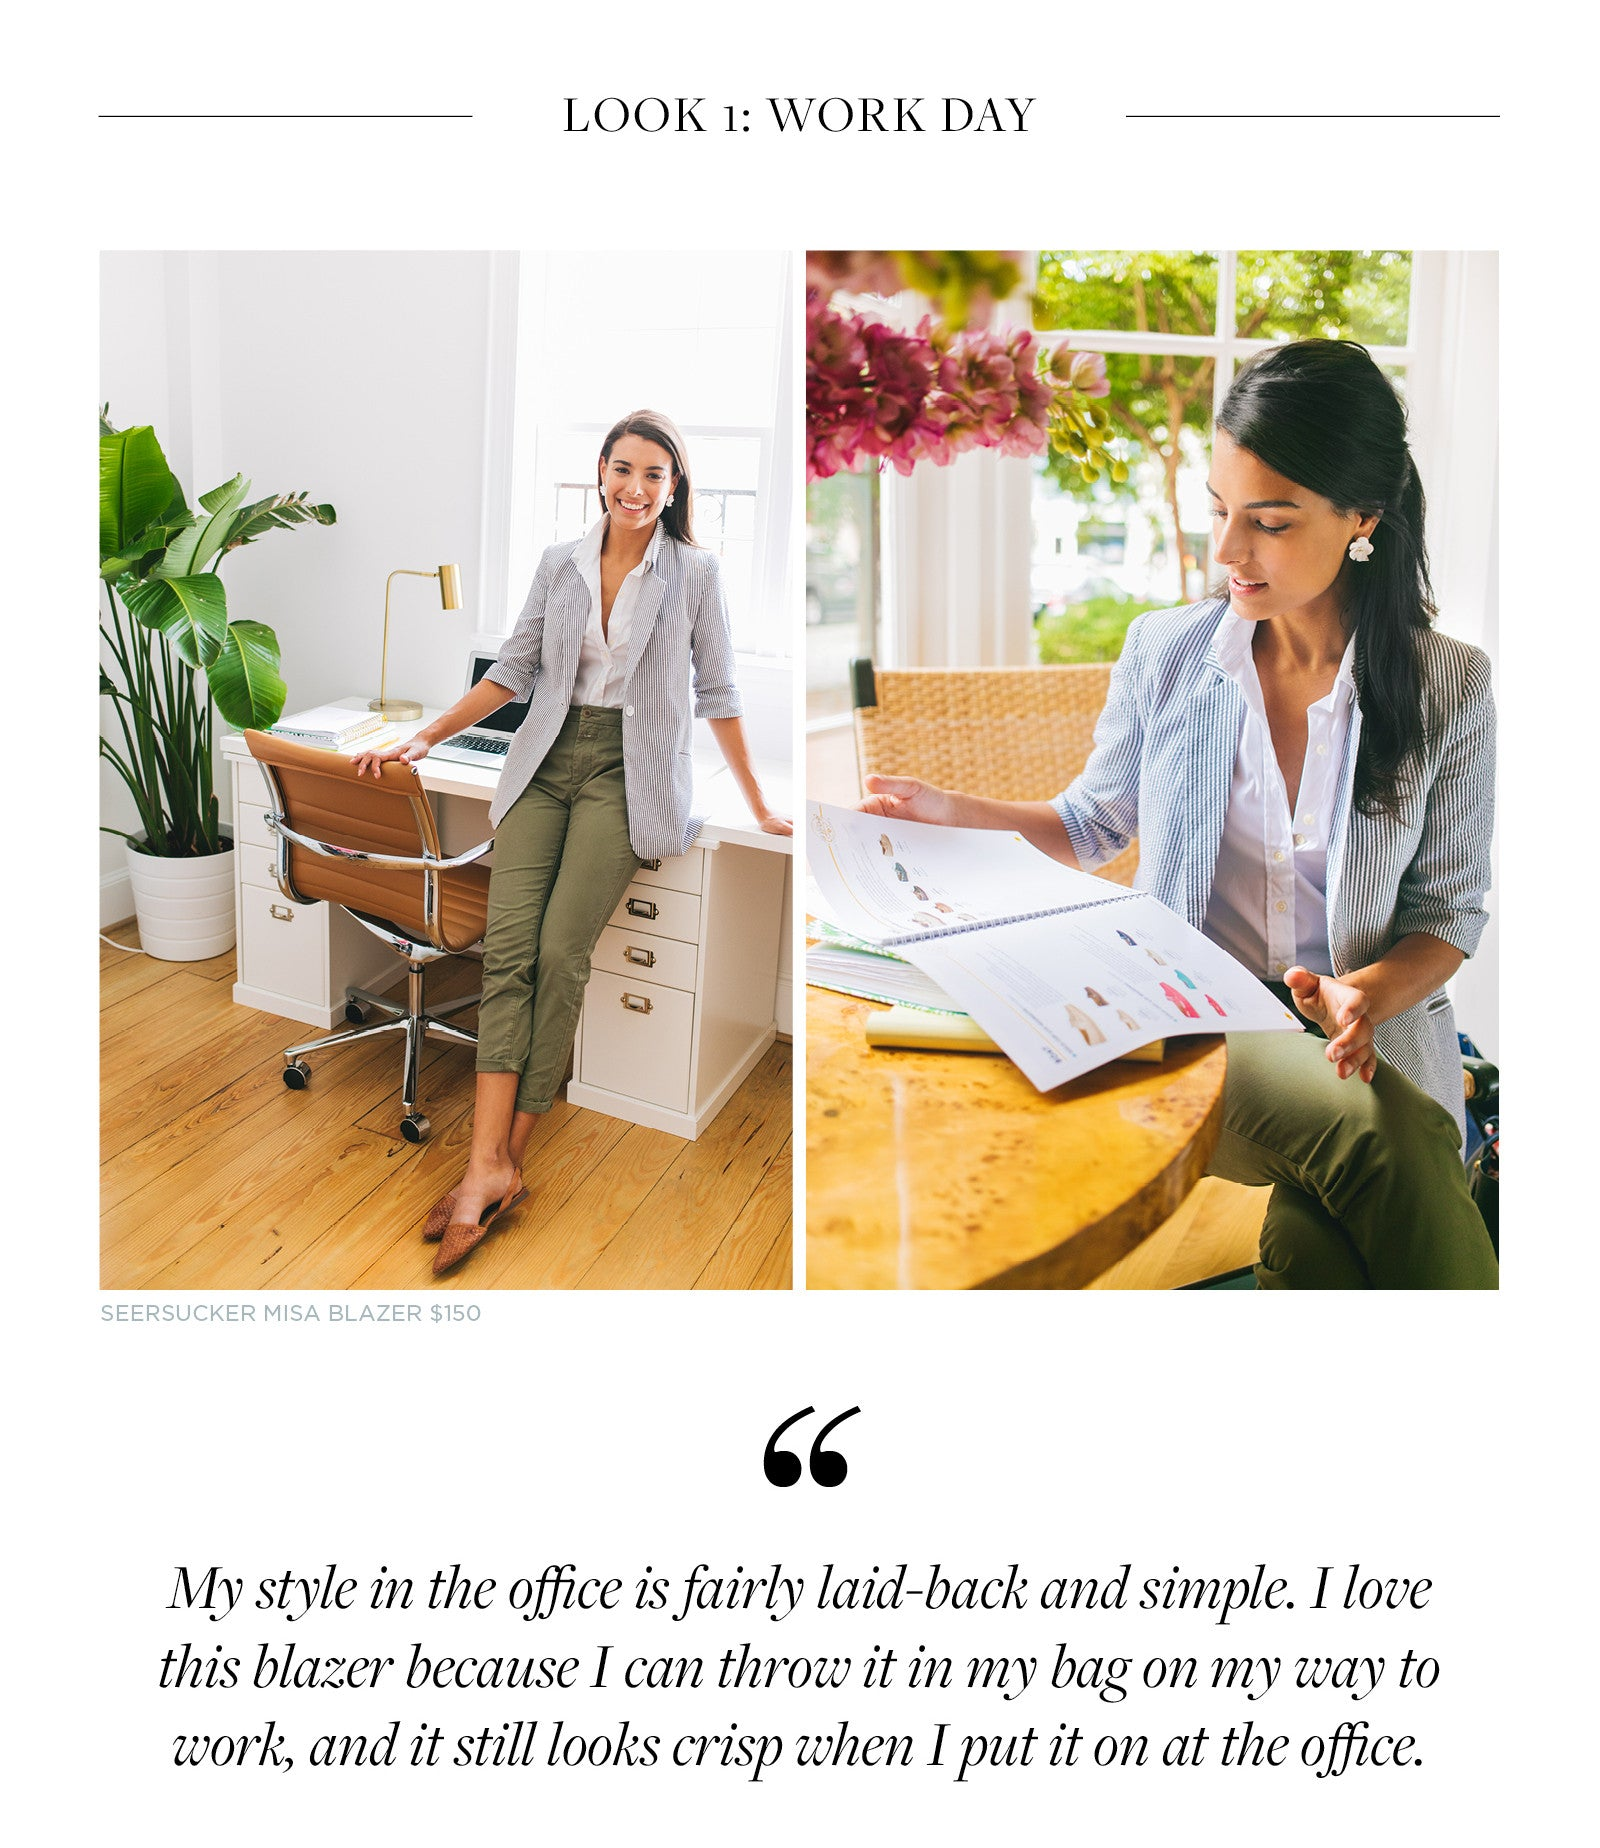 My style in the office is fairly laid-back and simple. I love this blazer because I can throw it in my bag on my way to work, and it still looks crisp when I put it on at the office.